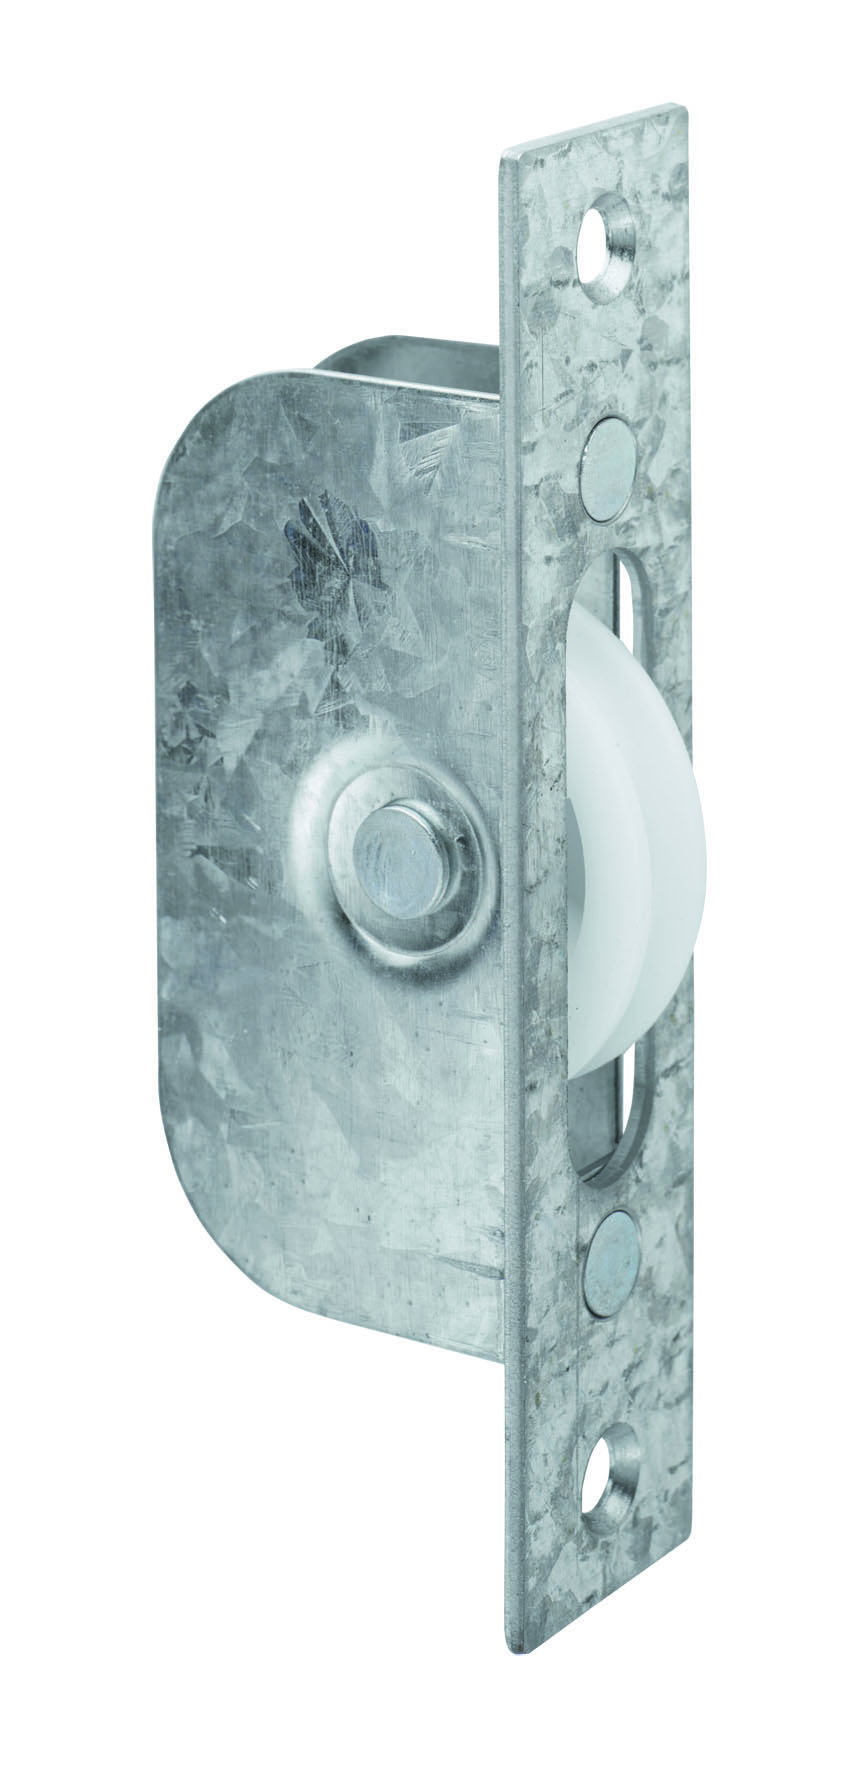 Galvanised Sash Window Axle Pulley with Square Forend